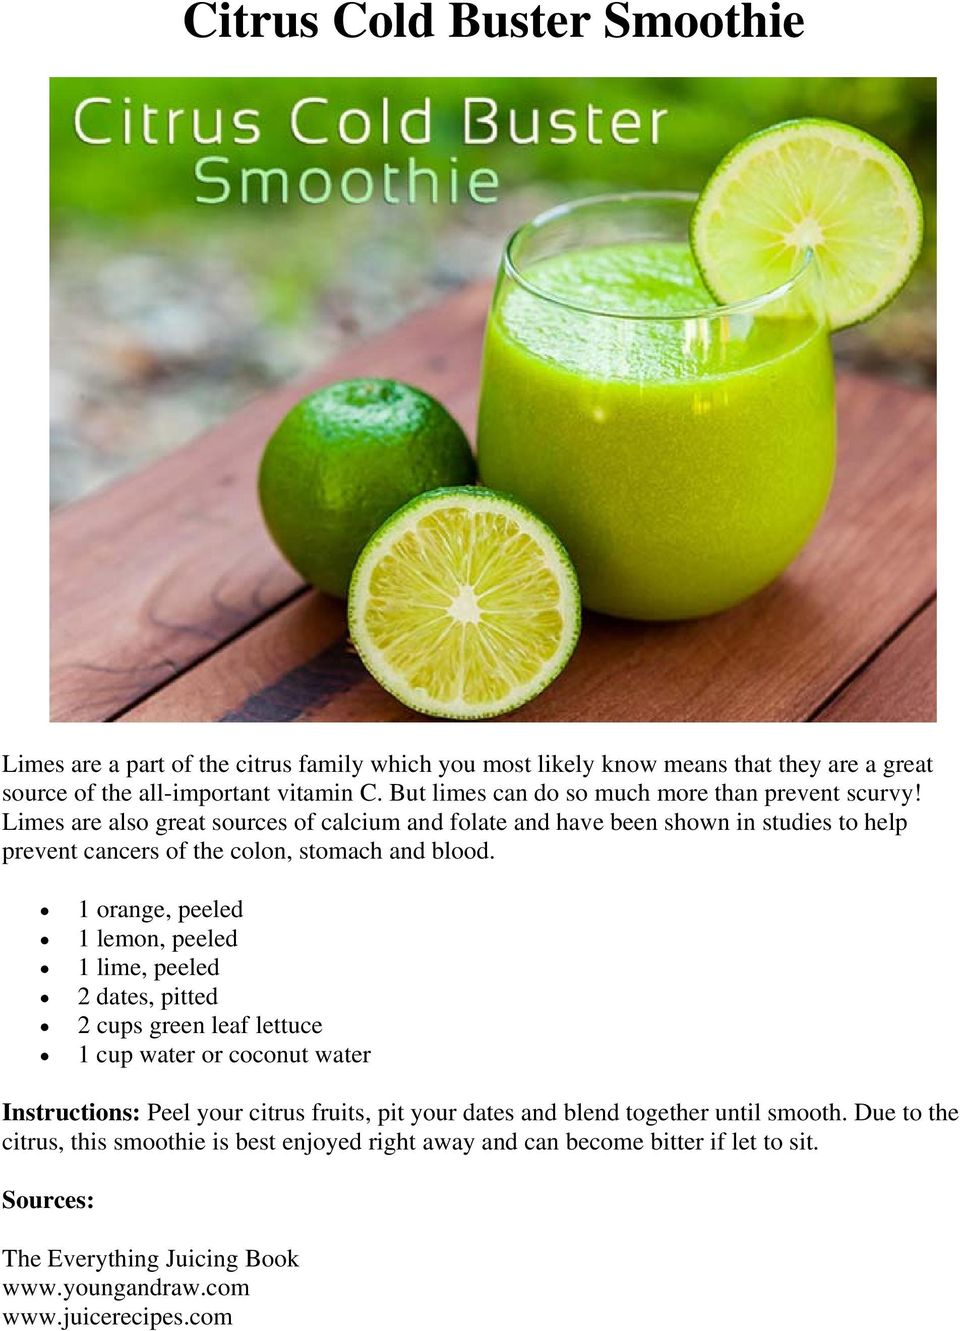 Limes are also great sources of calcium and folate and have been shown in studies to help prevent cancers of the colon, stomach and blood.